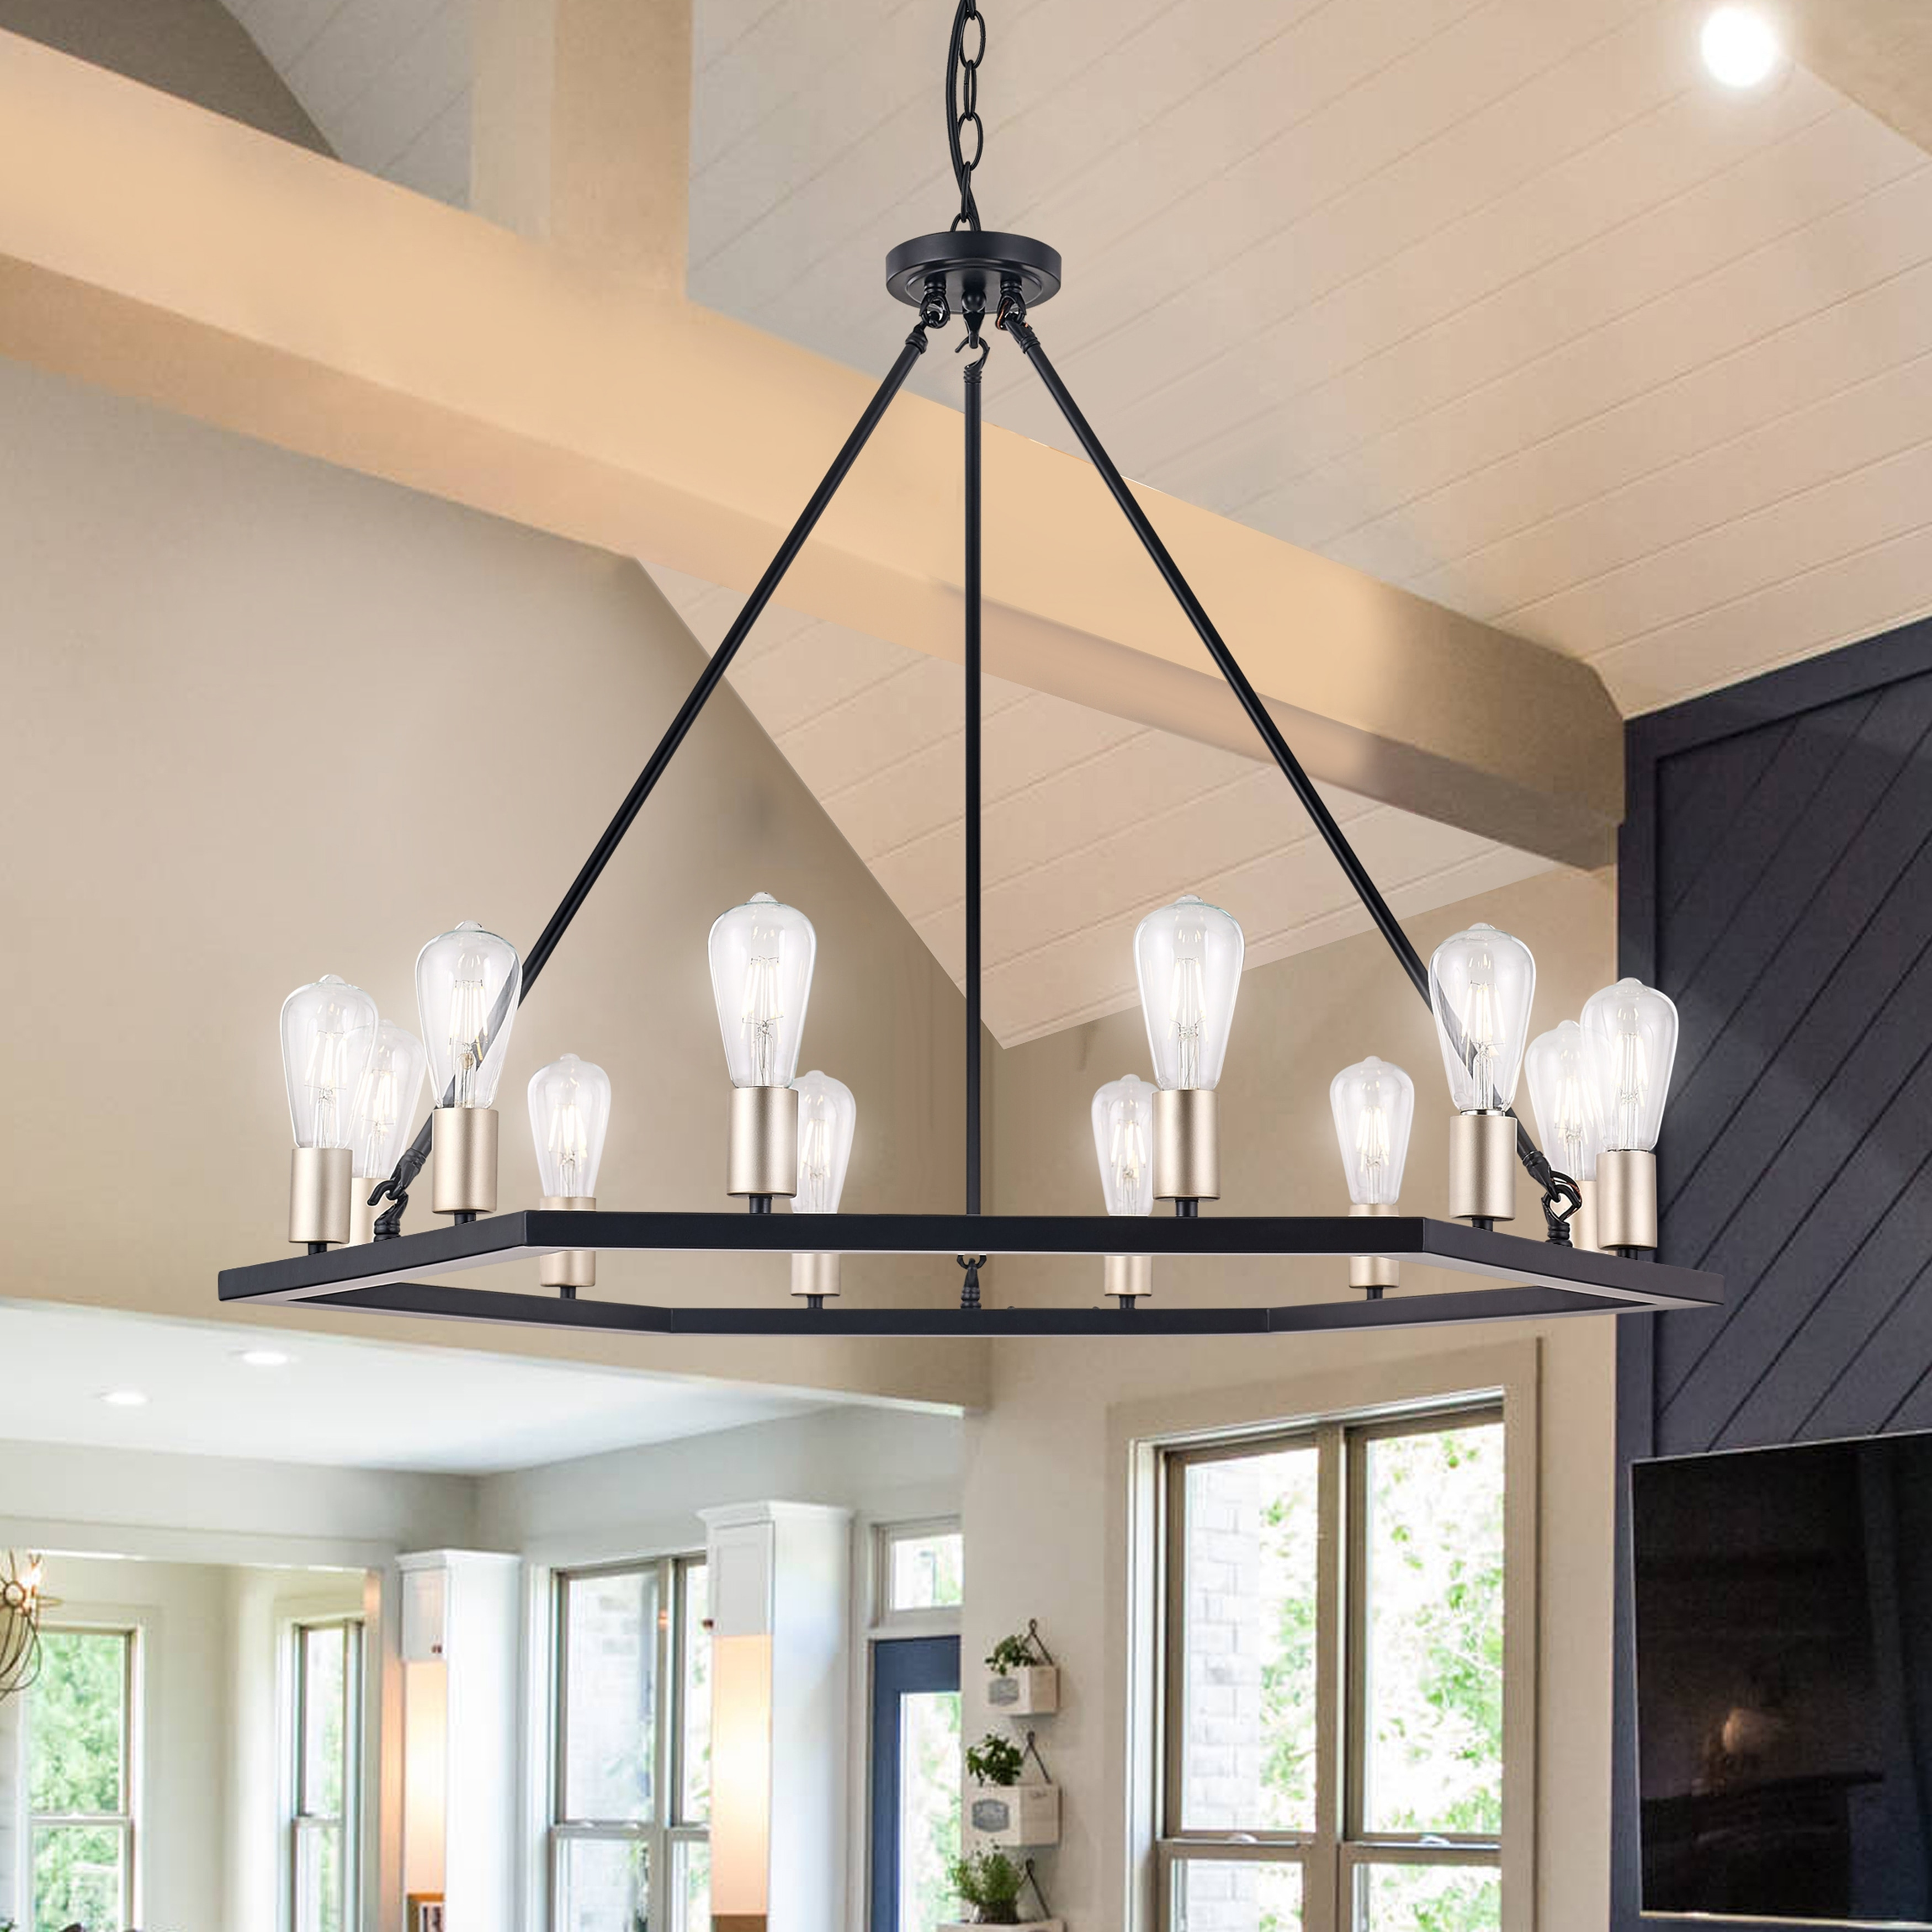 Wagon Wheel 12 Light Farmhouse Candle Style Chandelier 39 37 X39 37 X28 62 Overstock 32610843